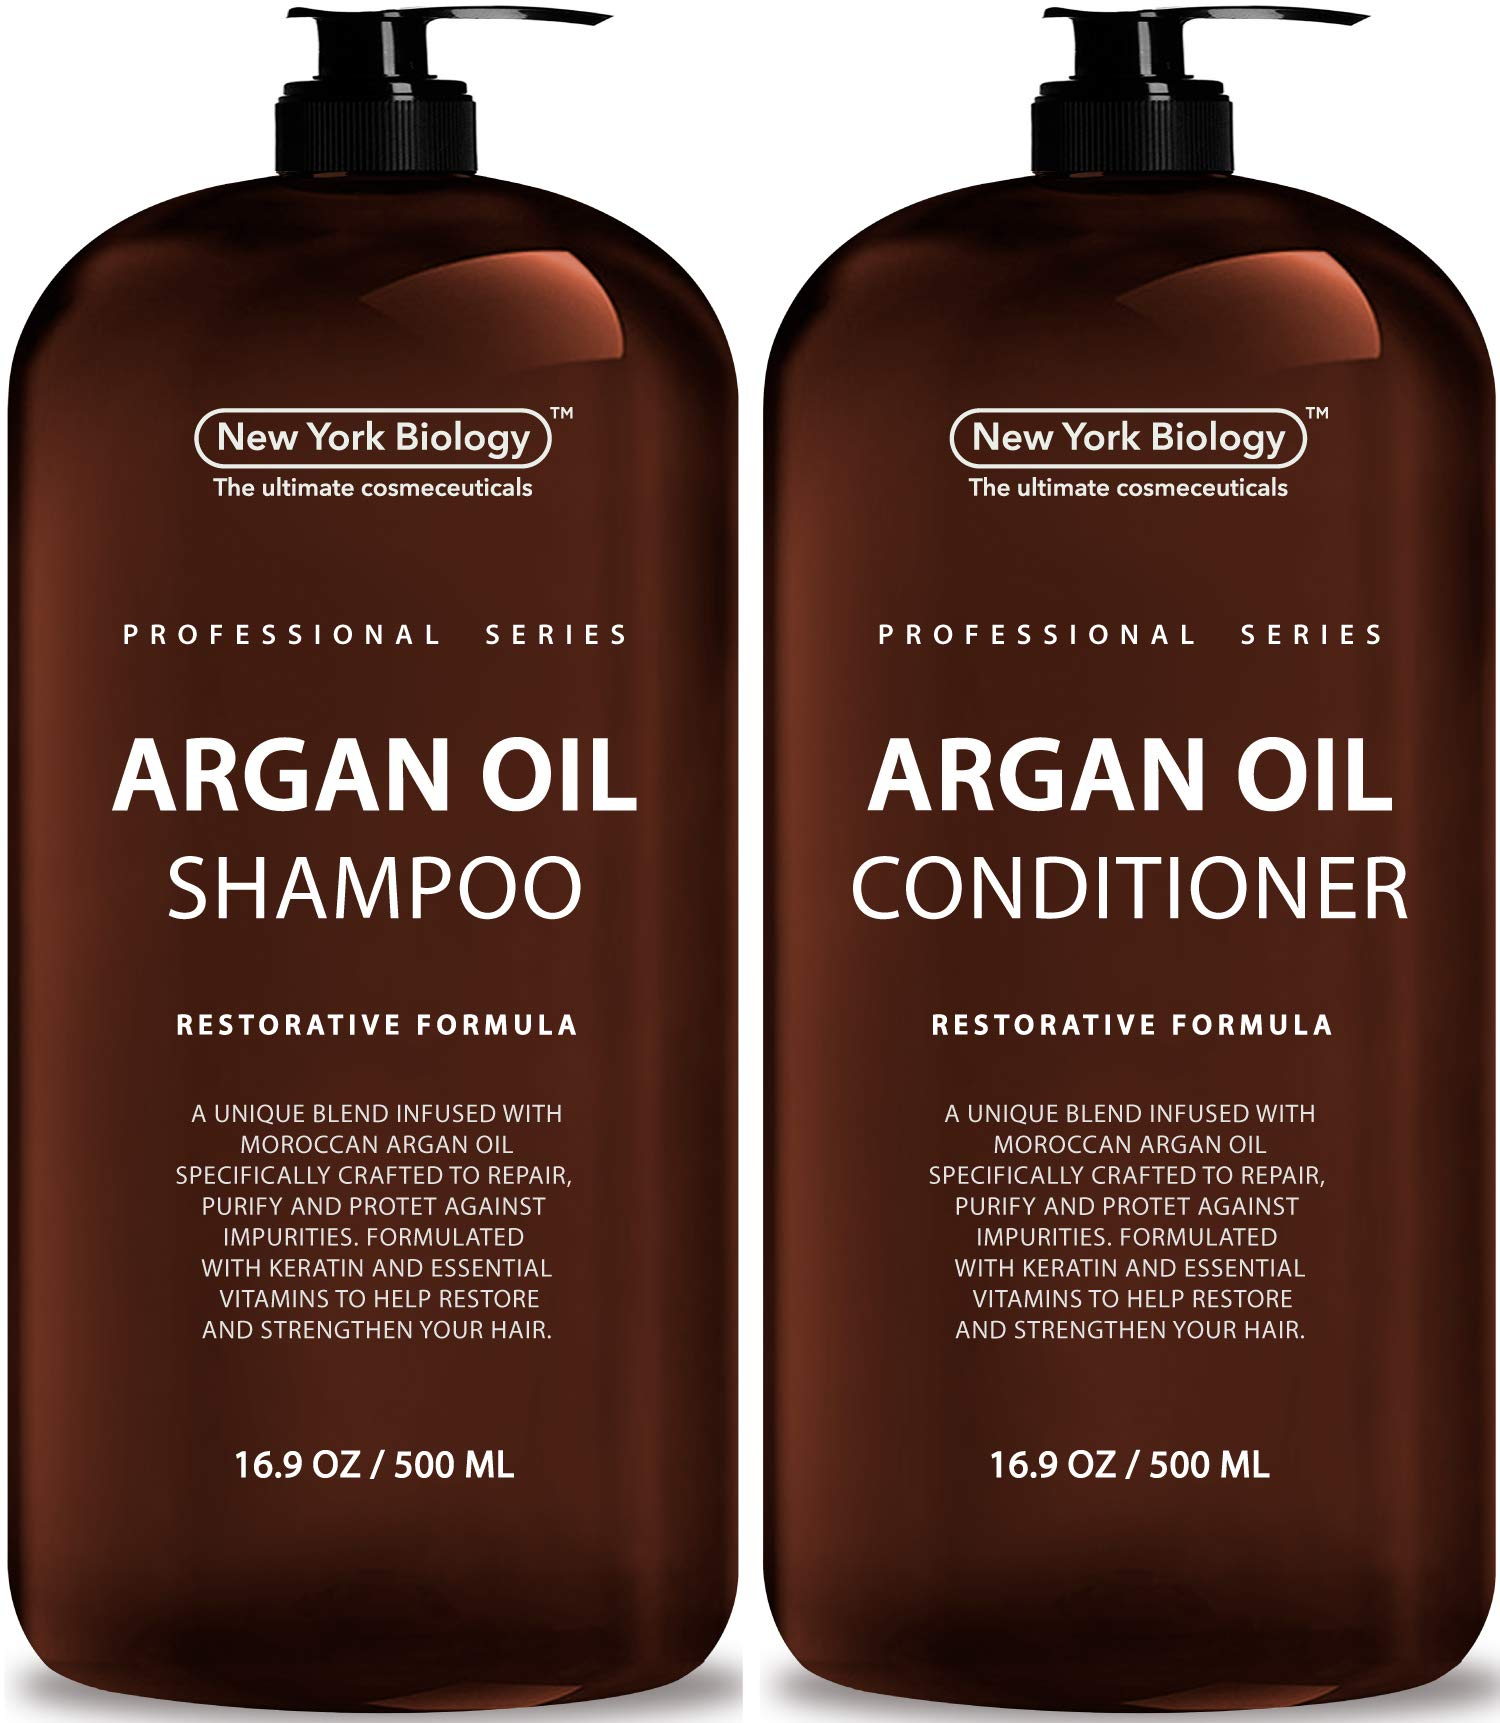 New York Biology Moroccan Argan Oil Shampoo and Conditioner - All Natural - Moisturizing and Volumizing Professional Series Restorative Formula - Infused with Keratin and Sulfate Free - Huge 16 oz by New York Biology